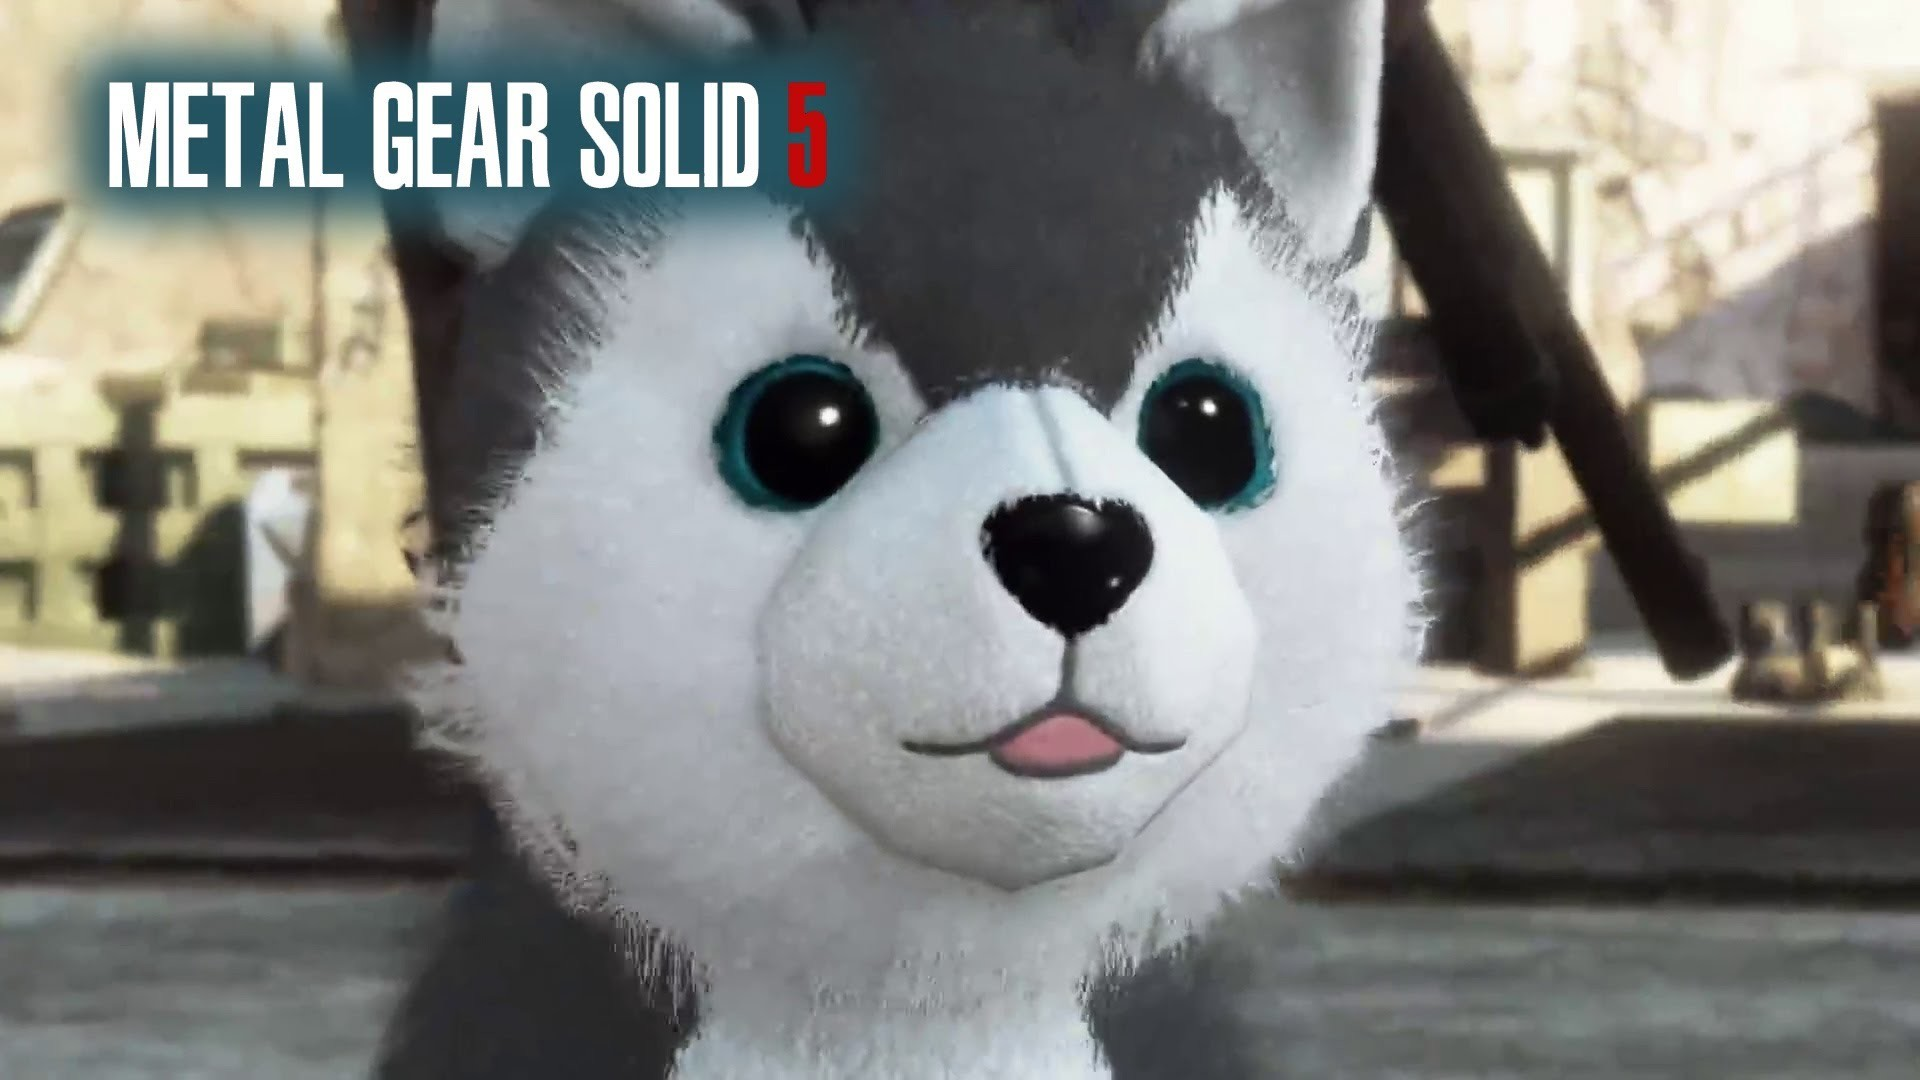 Metal Gear Solid 5 Phantom Pain, DD Diamond Dog Location How To Find, The  Cute Puppy Dog – YouTube